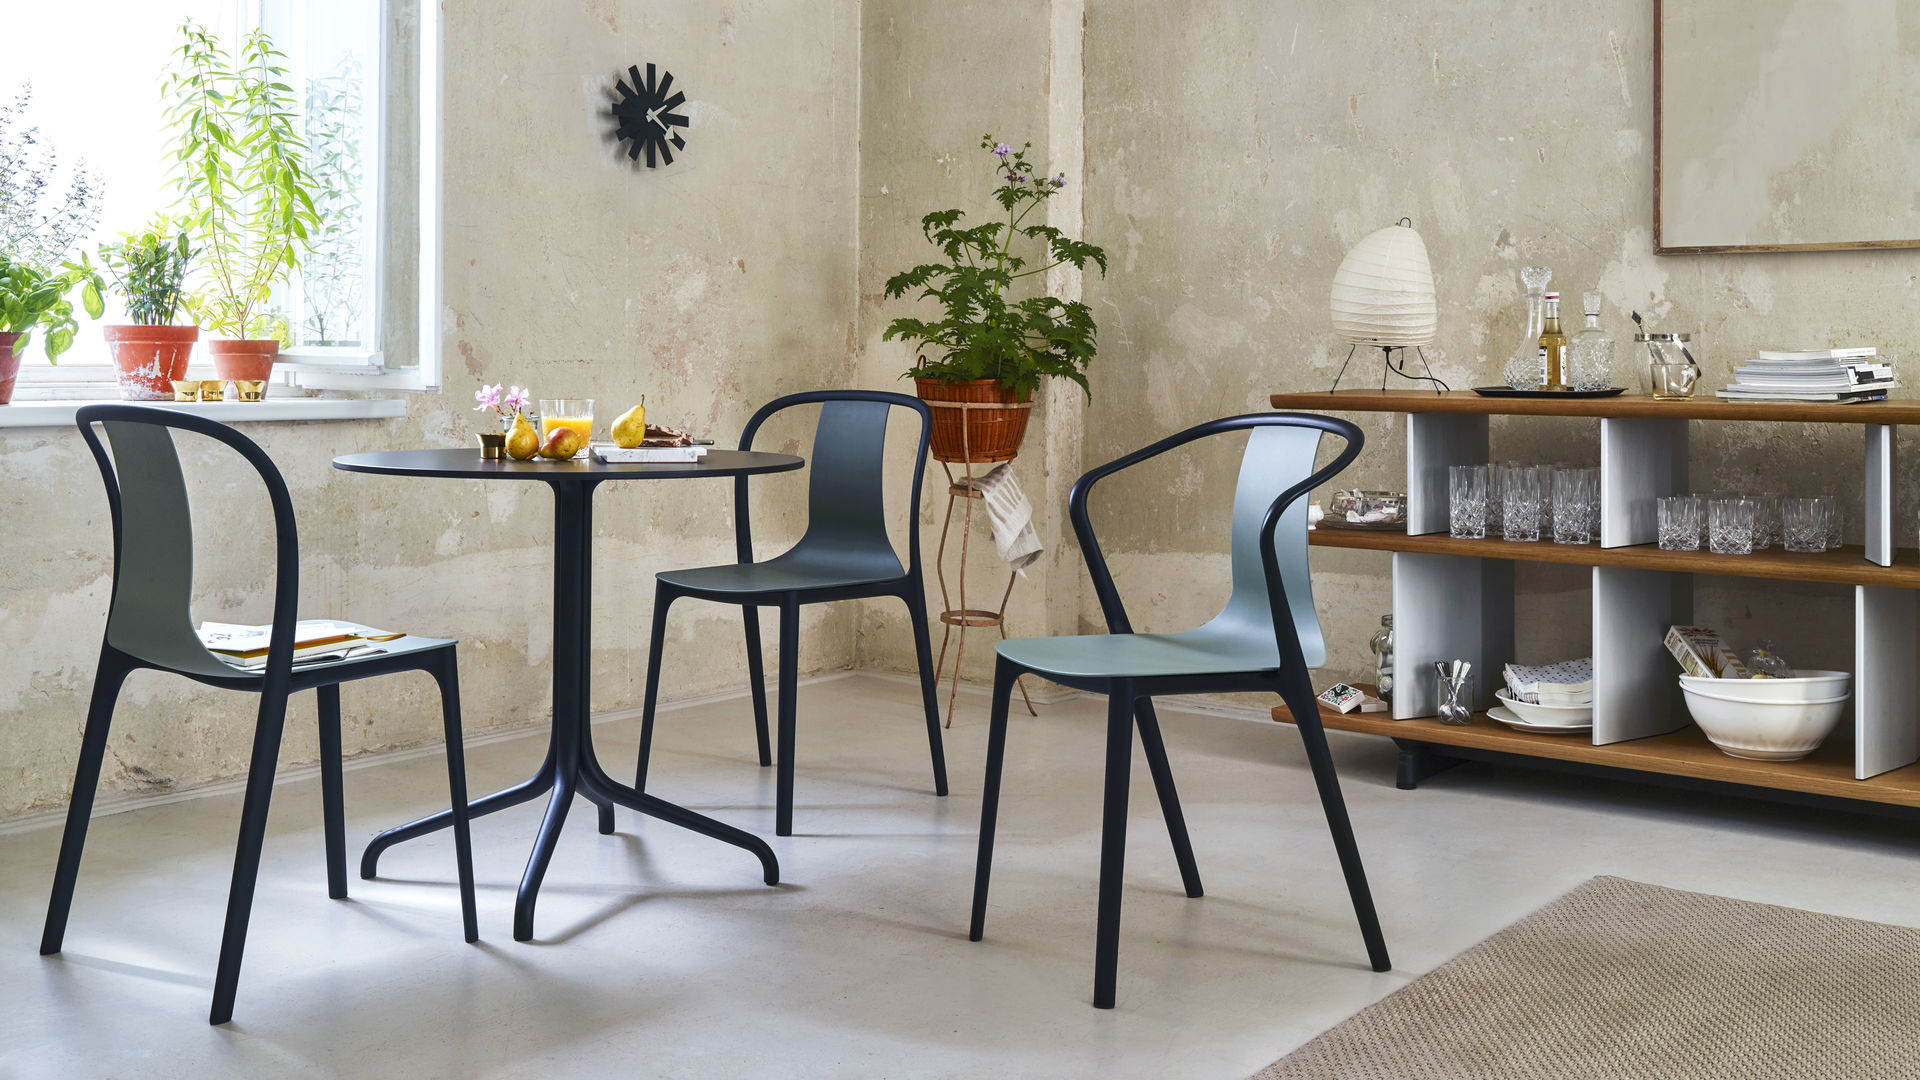 Belleville Side Chair Belleville Armchair Round Table_web_inspiration